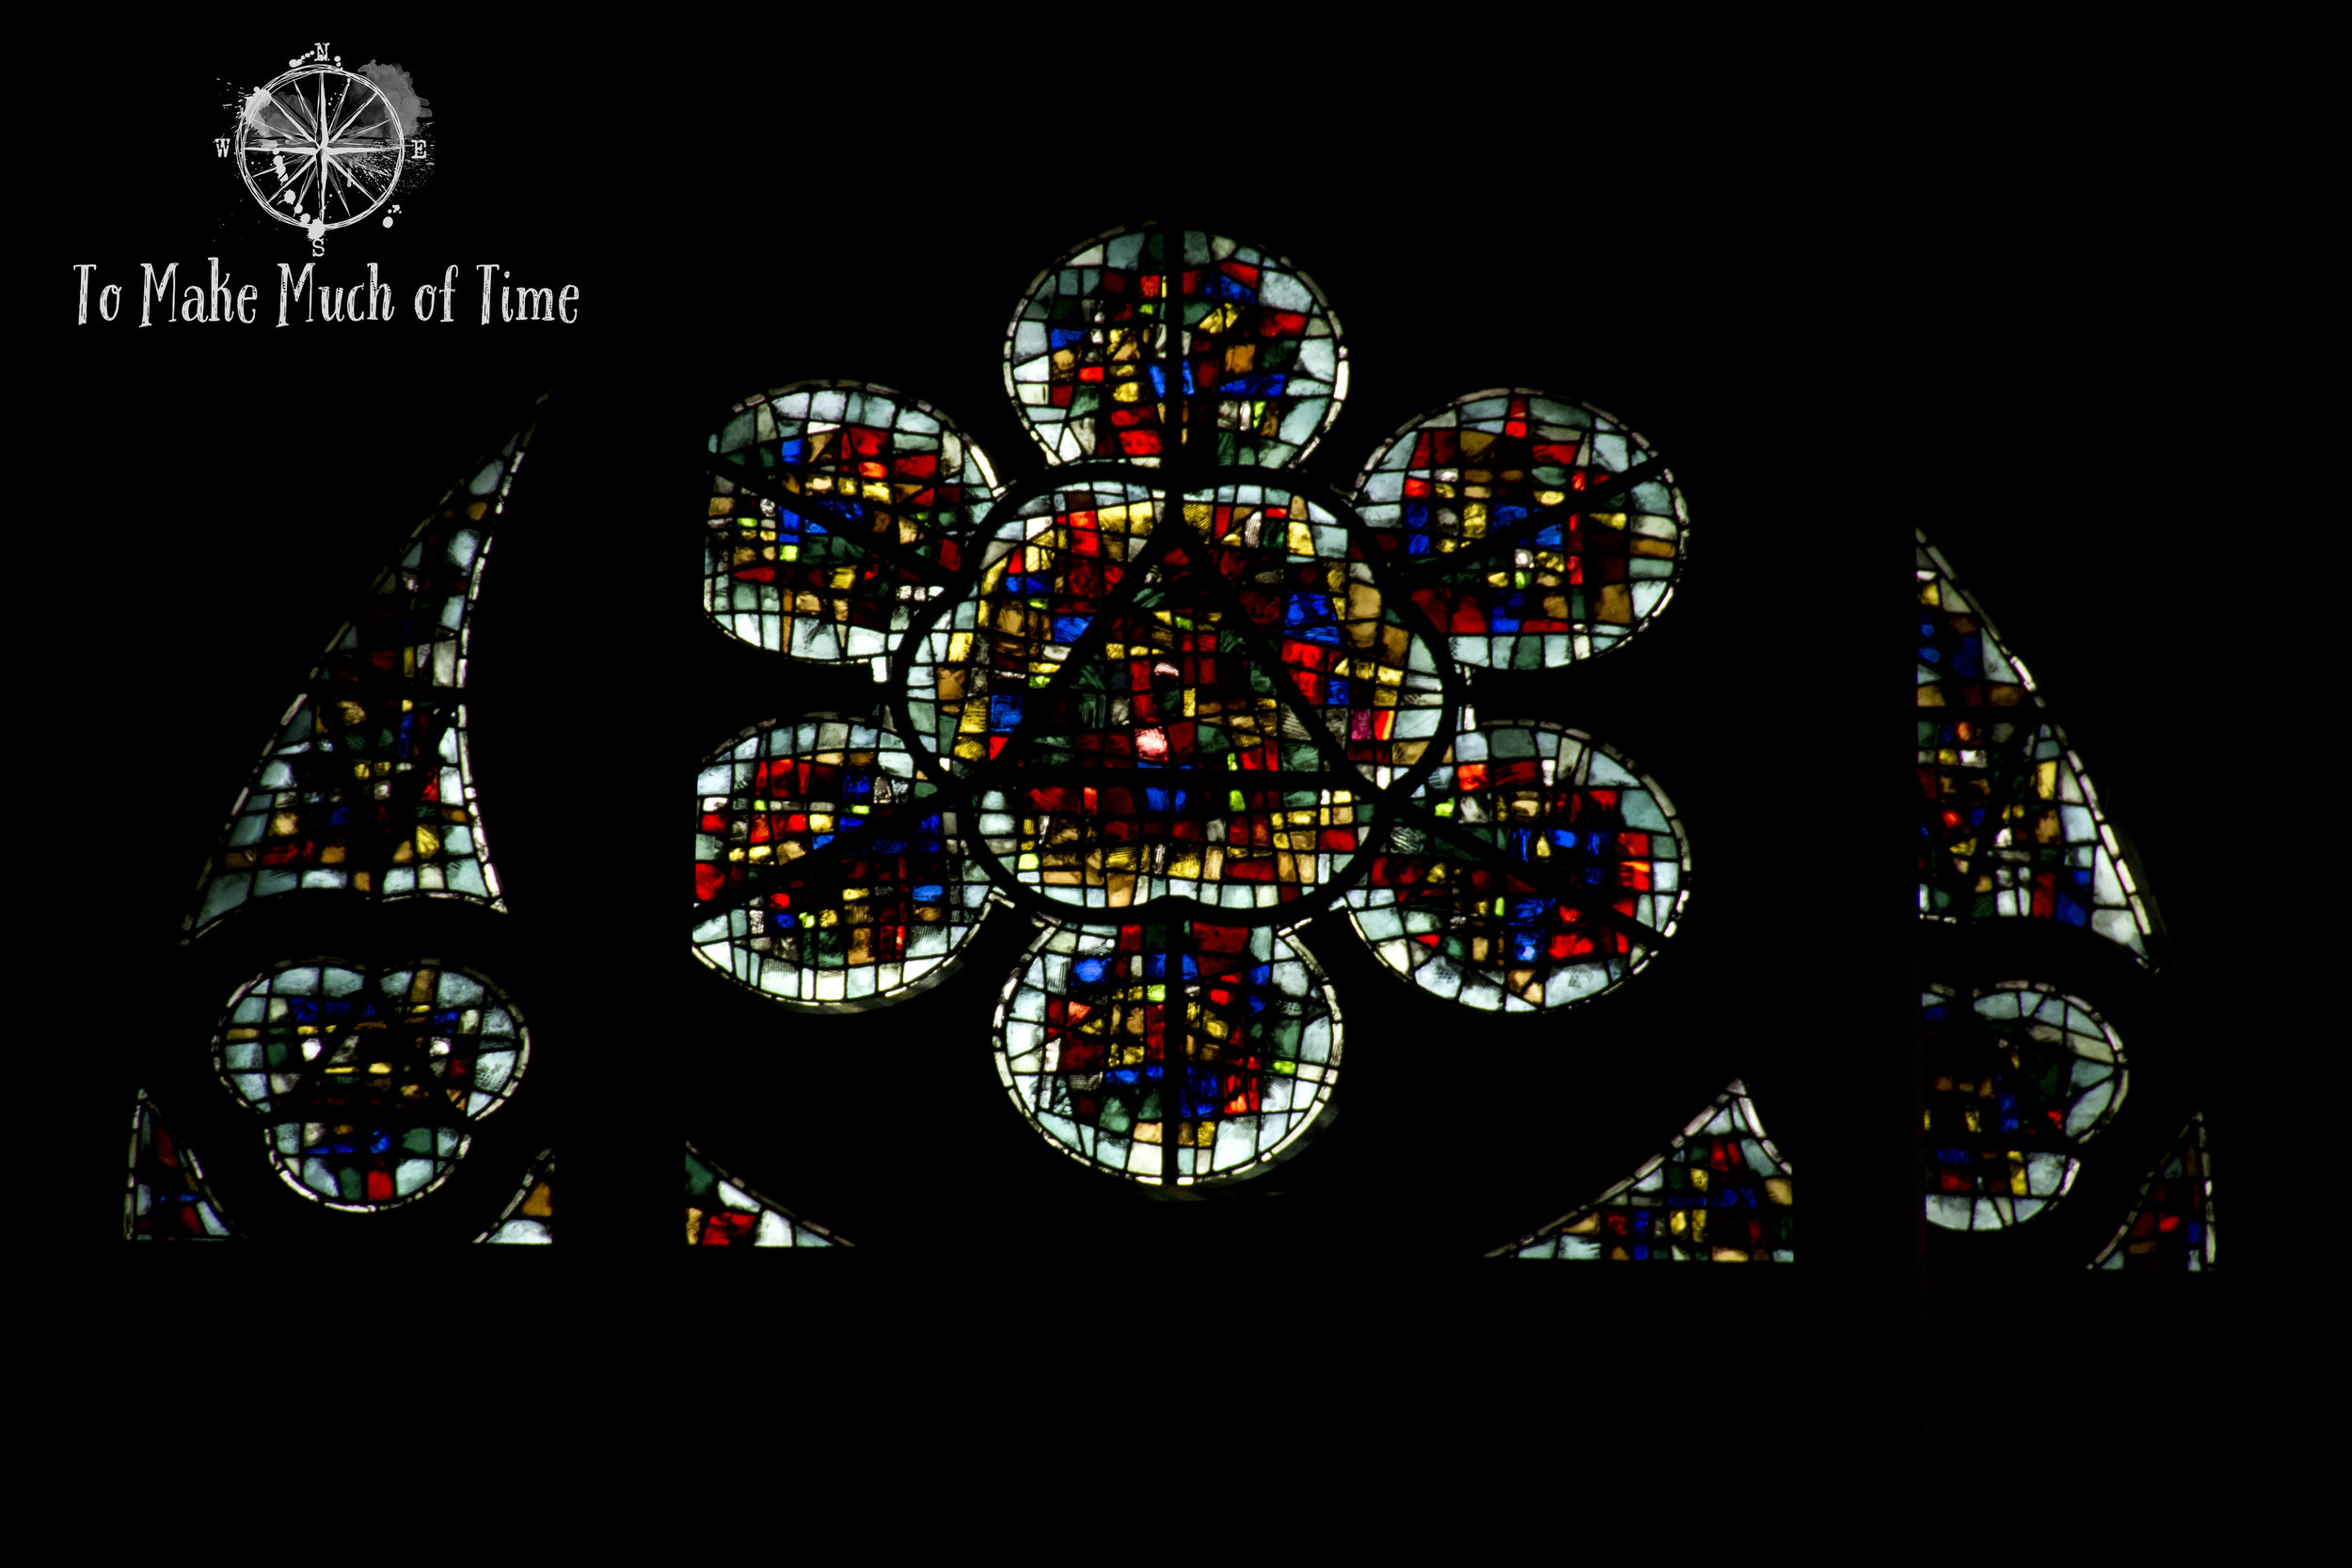 While they are all beautiful, the difference in craftsmanship between the windows of Notre-Dame is incredible.